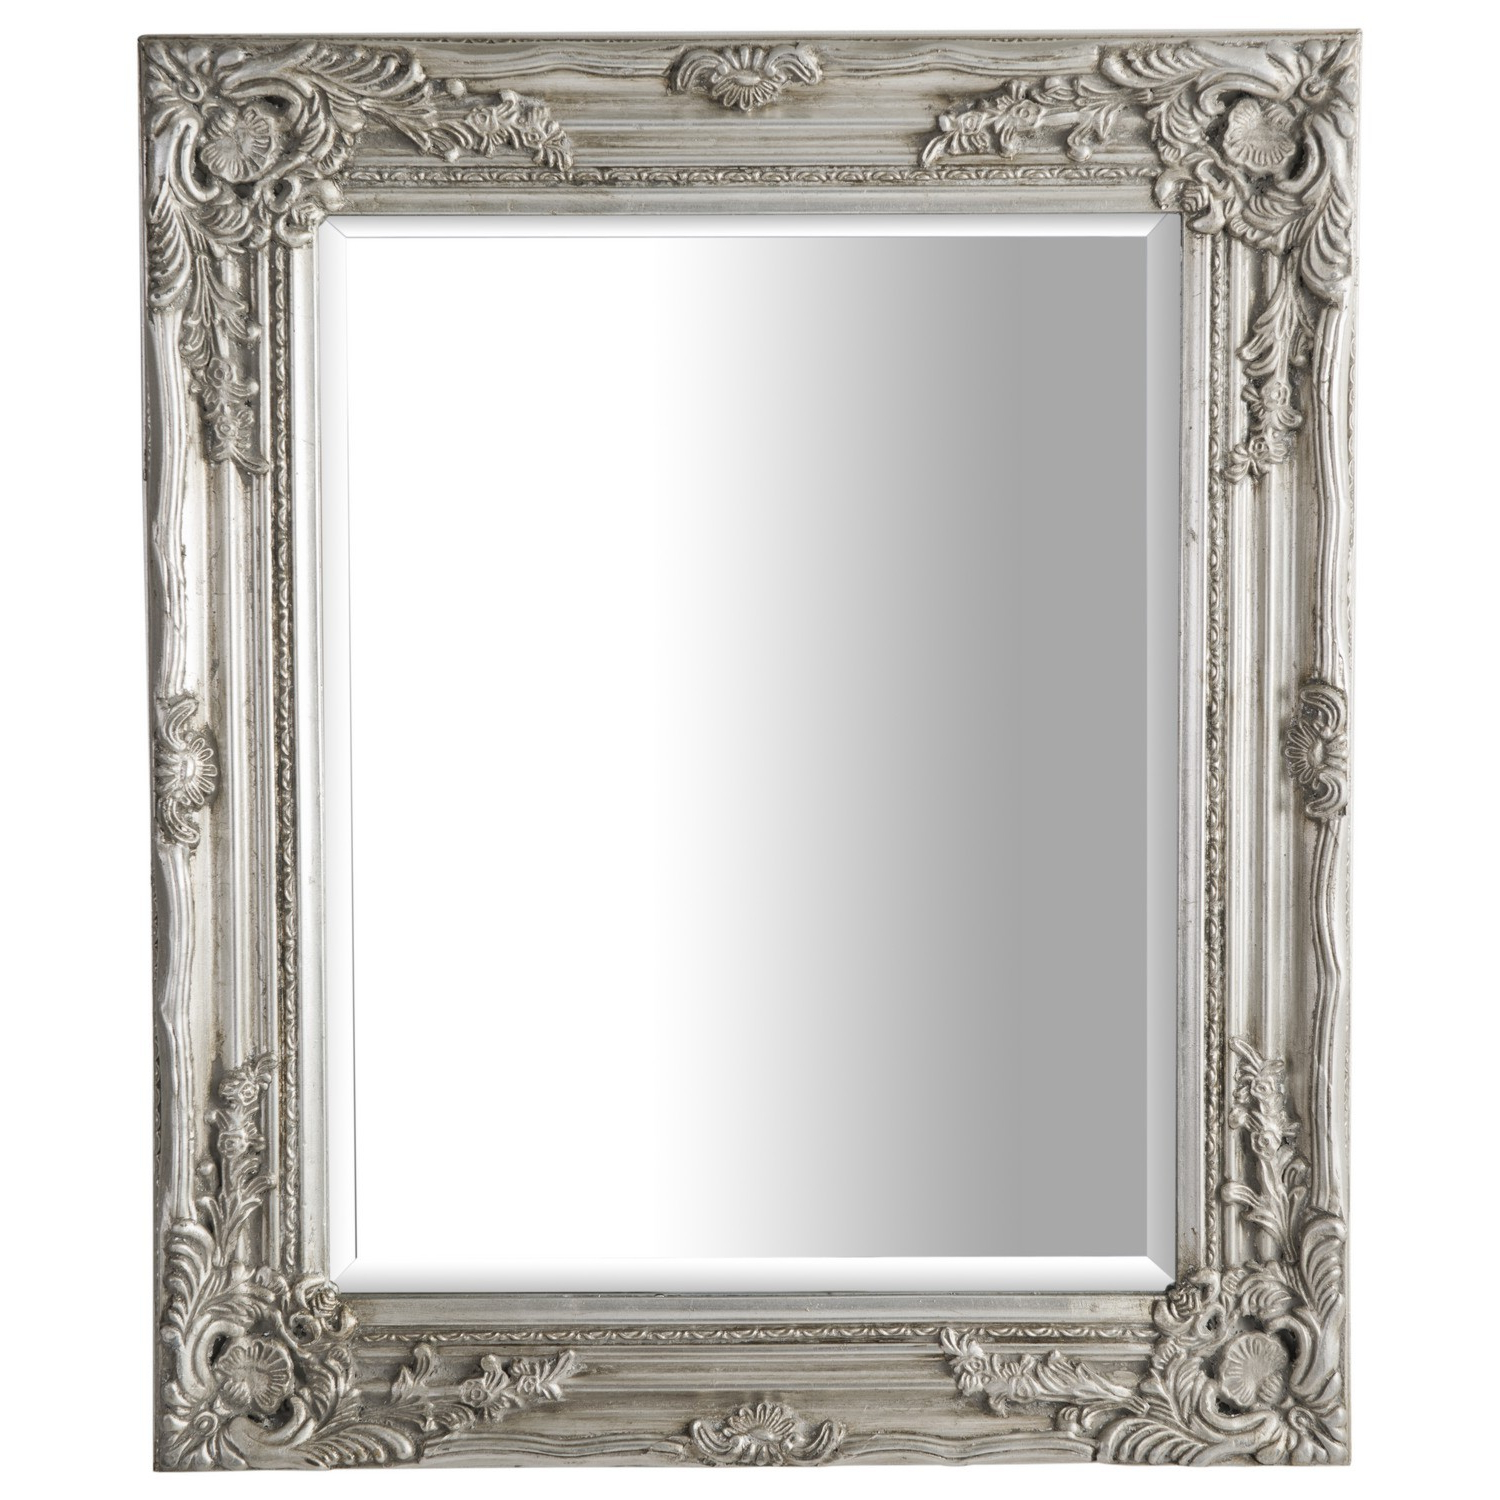 Best And Newest Antique Silver Wall Mirrors Throughout Silver Antique Ornate Mirror (View 5 of 20)